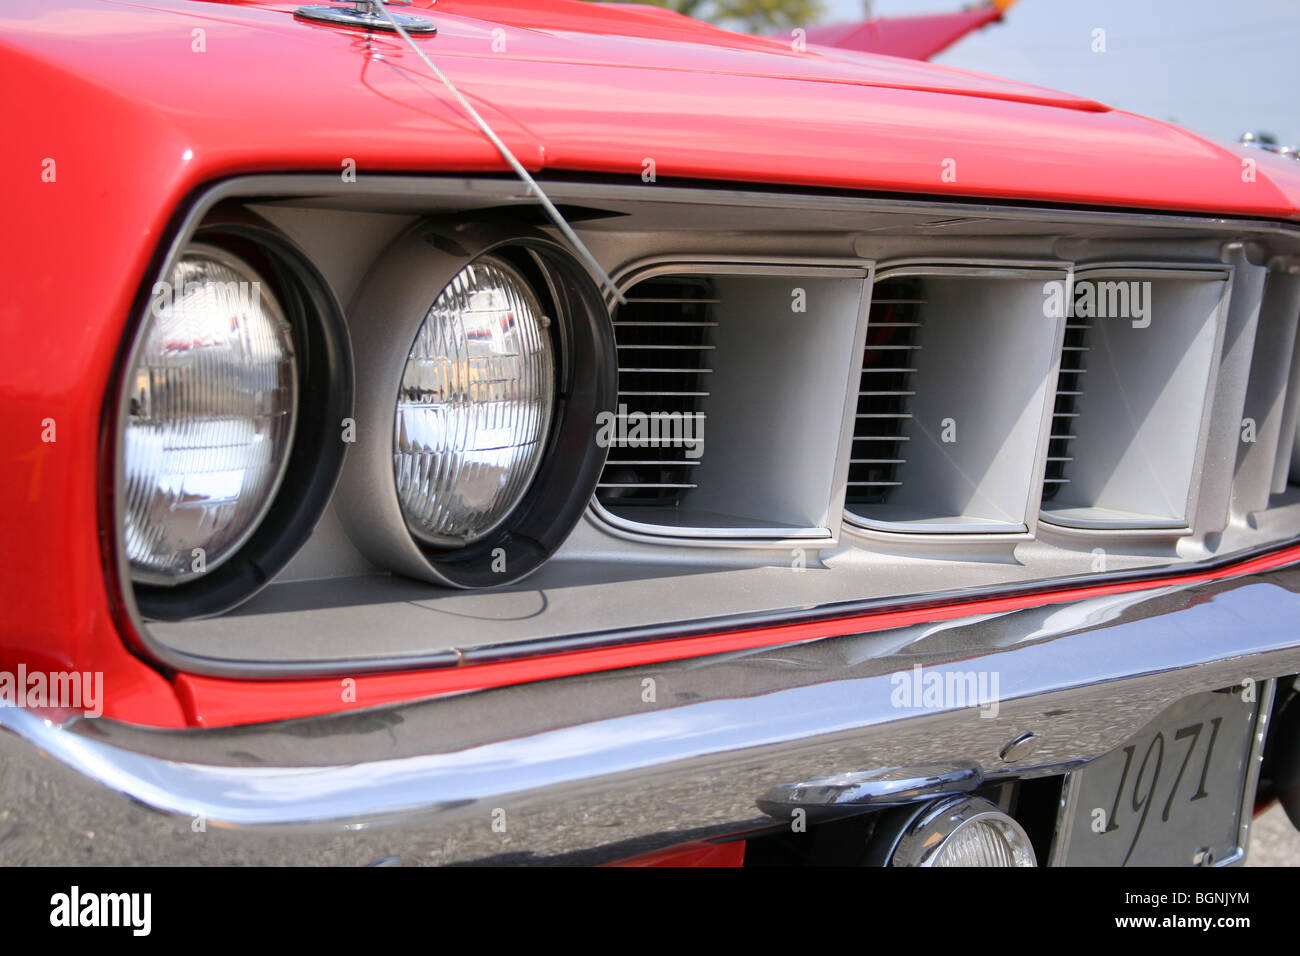 Cuda Stock Photos & Cuda Stock Images - Alamy